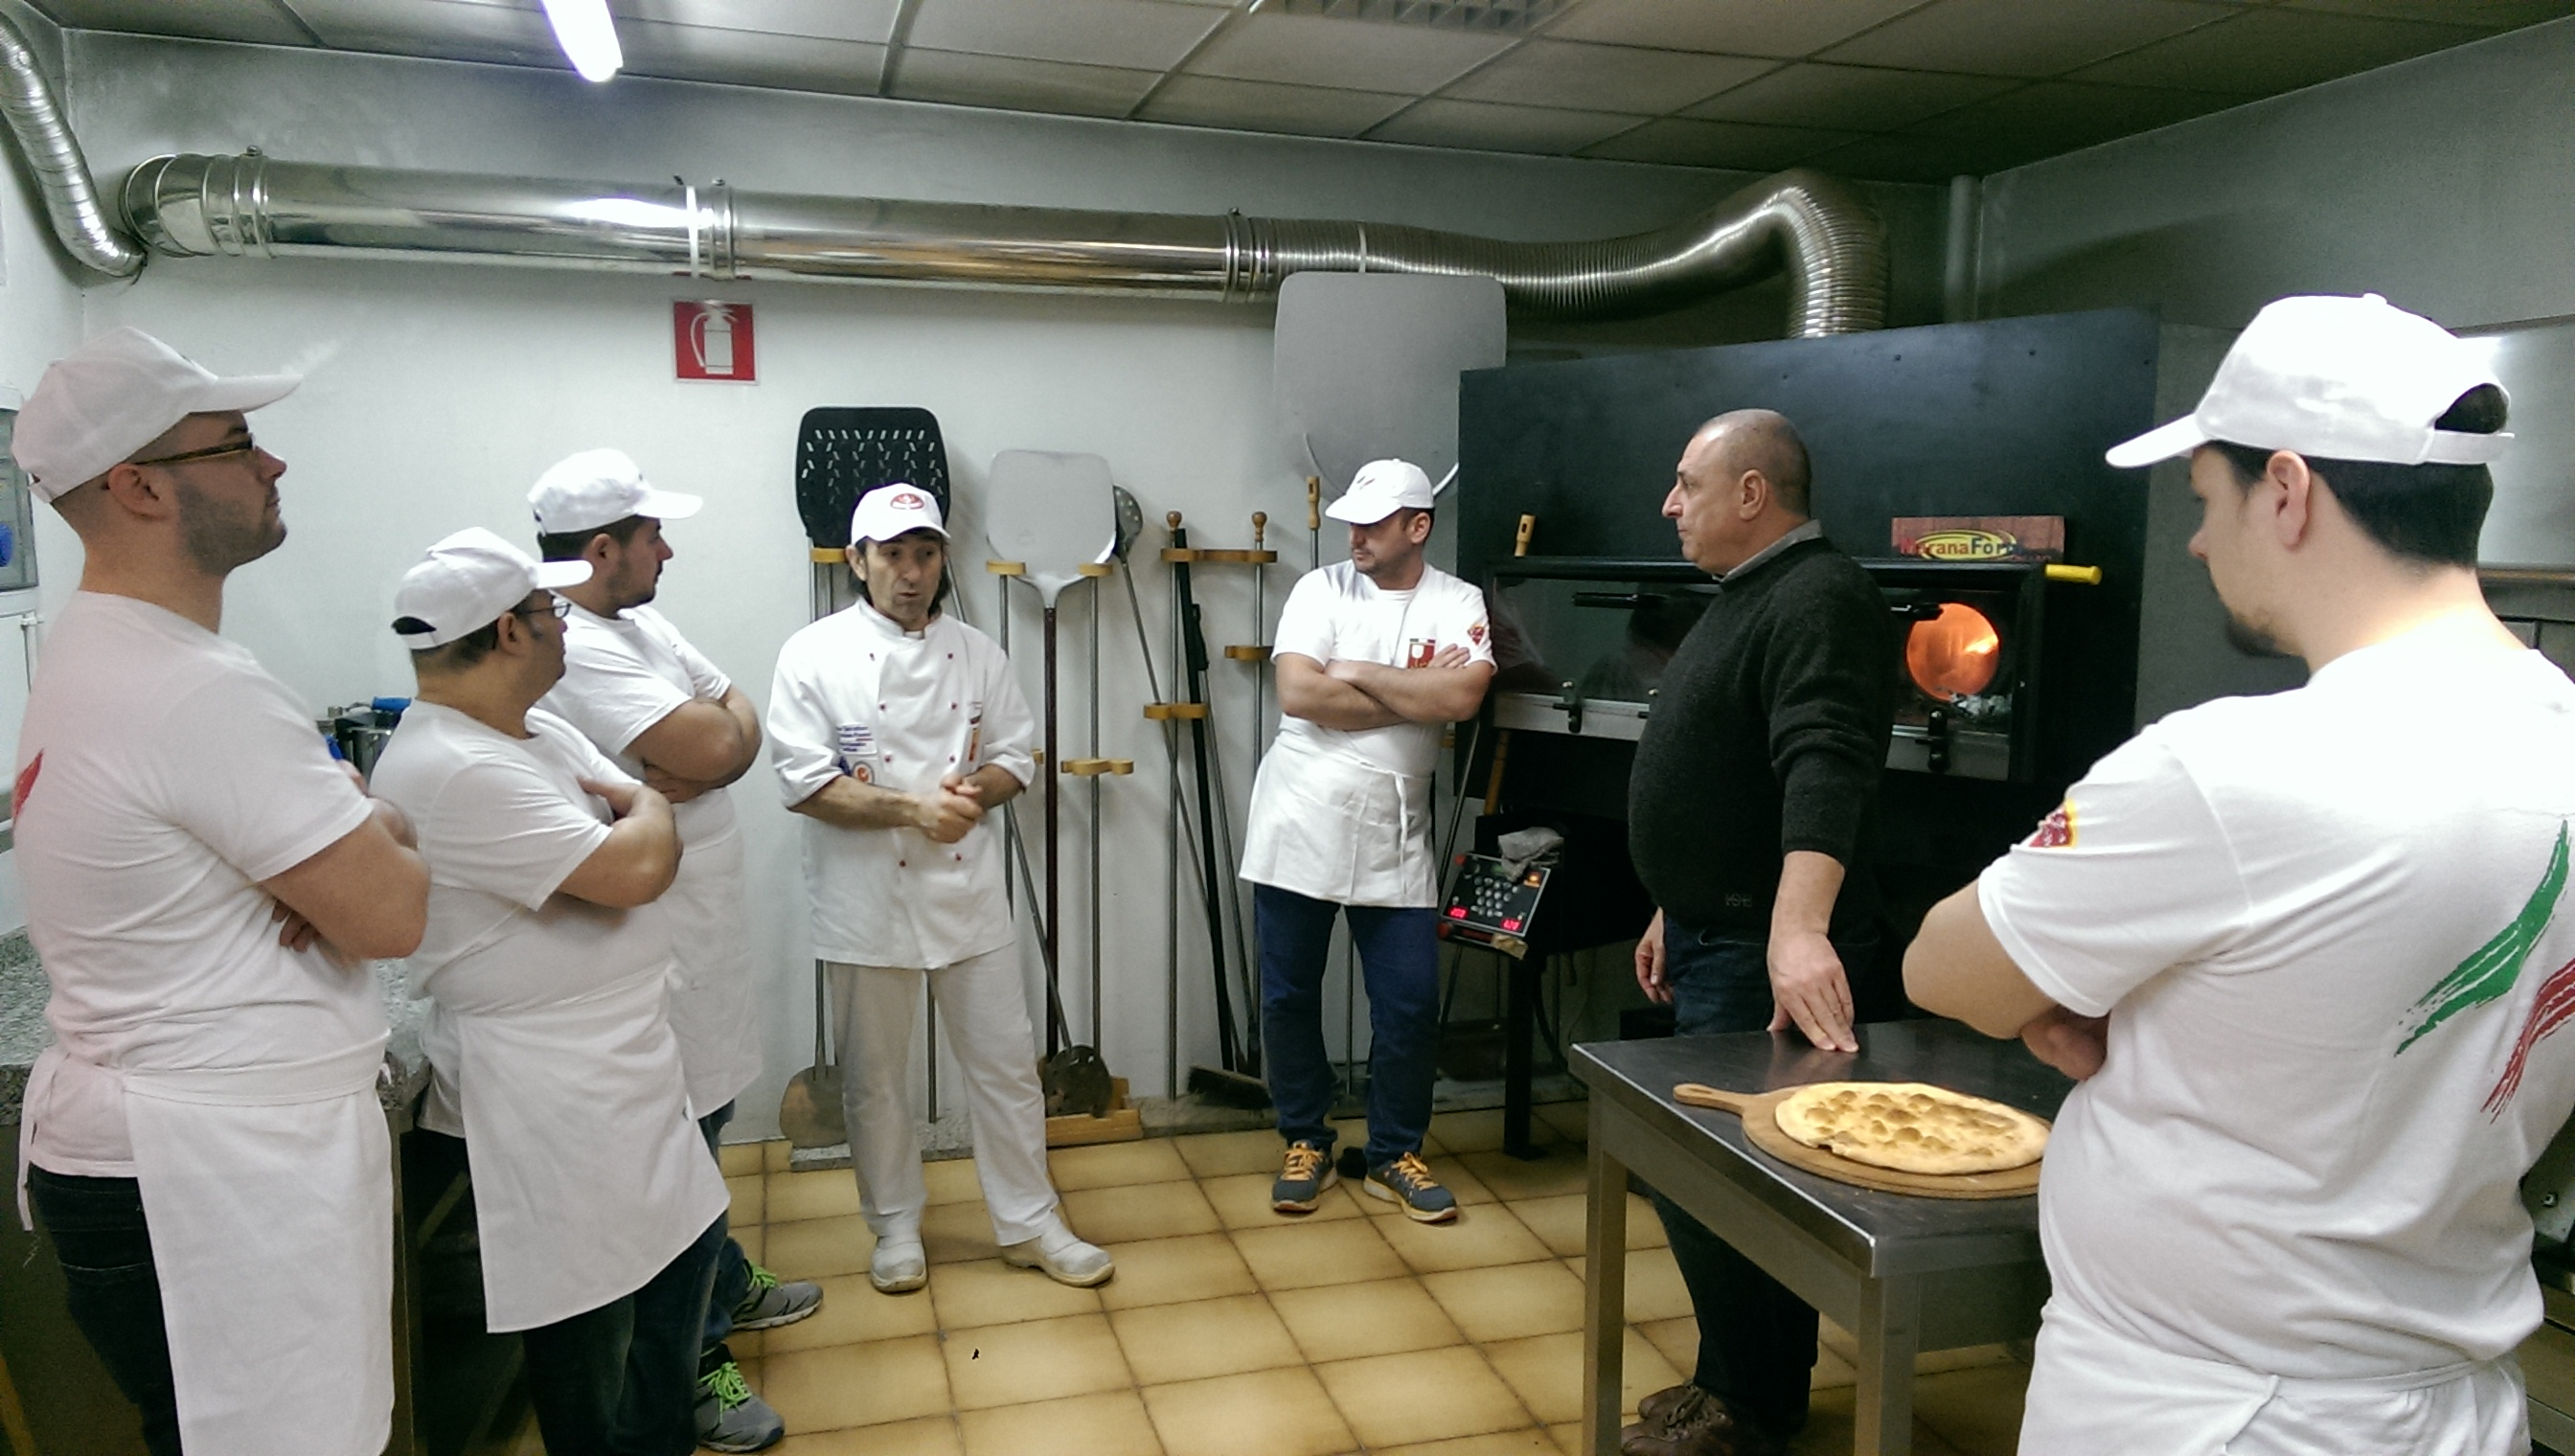 Graziano Bertuzzo explains about the oven